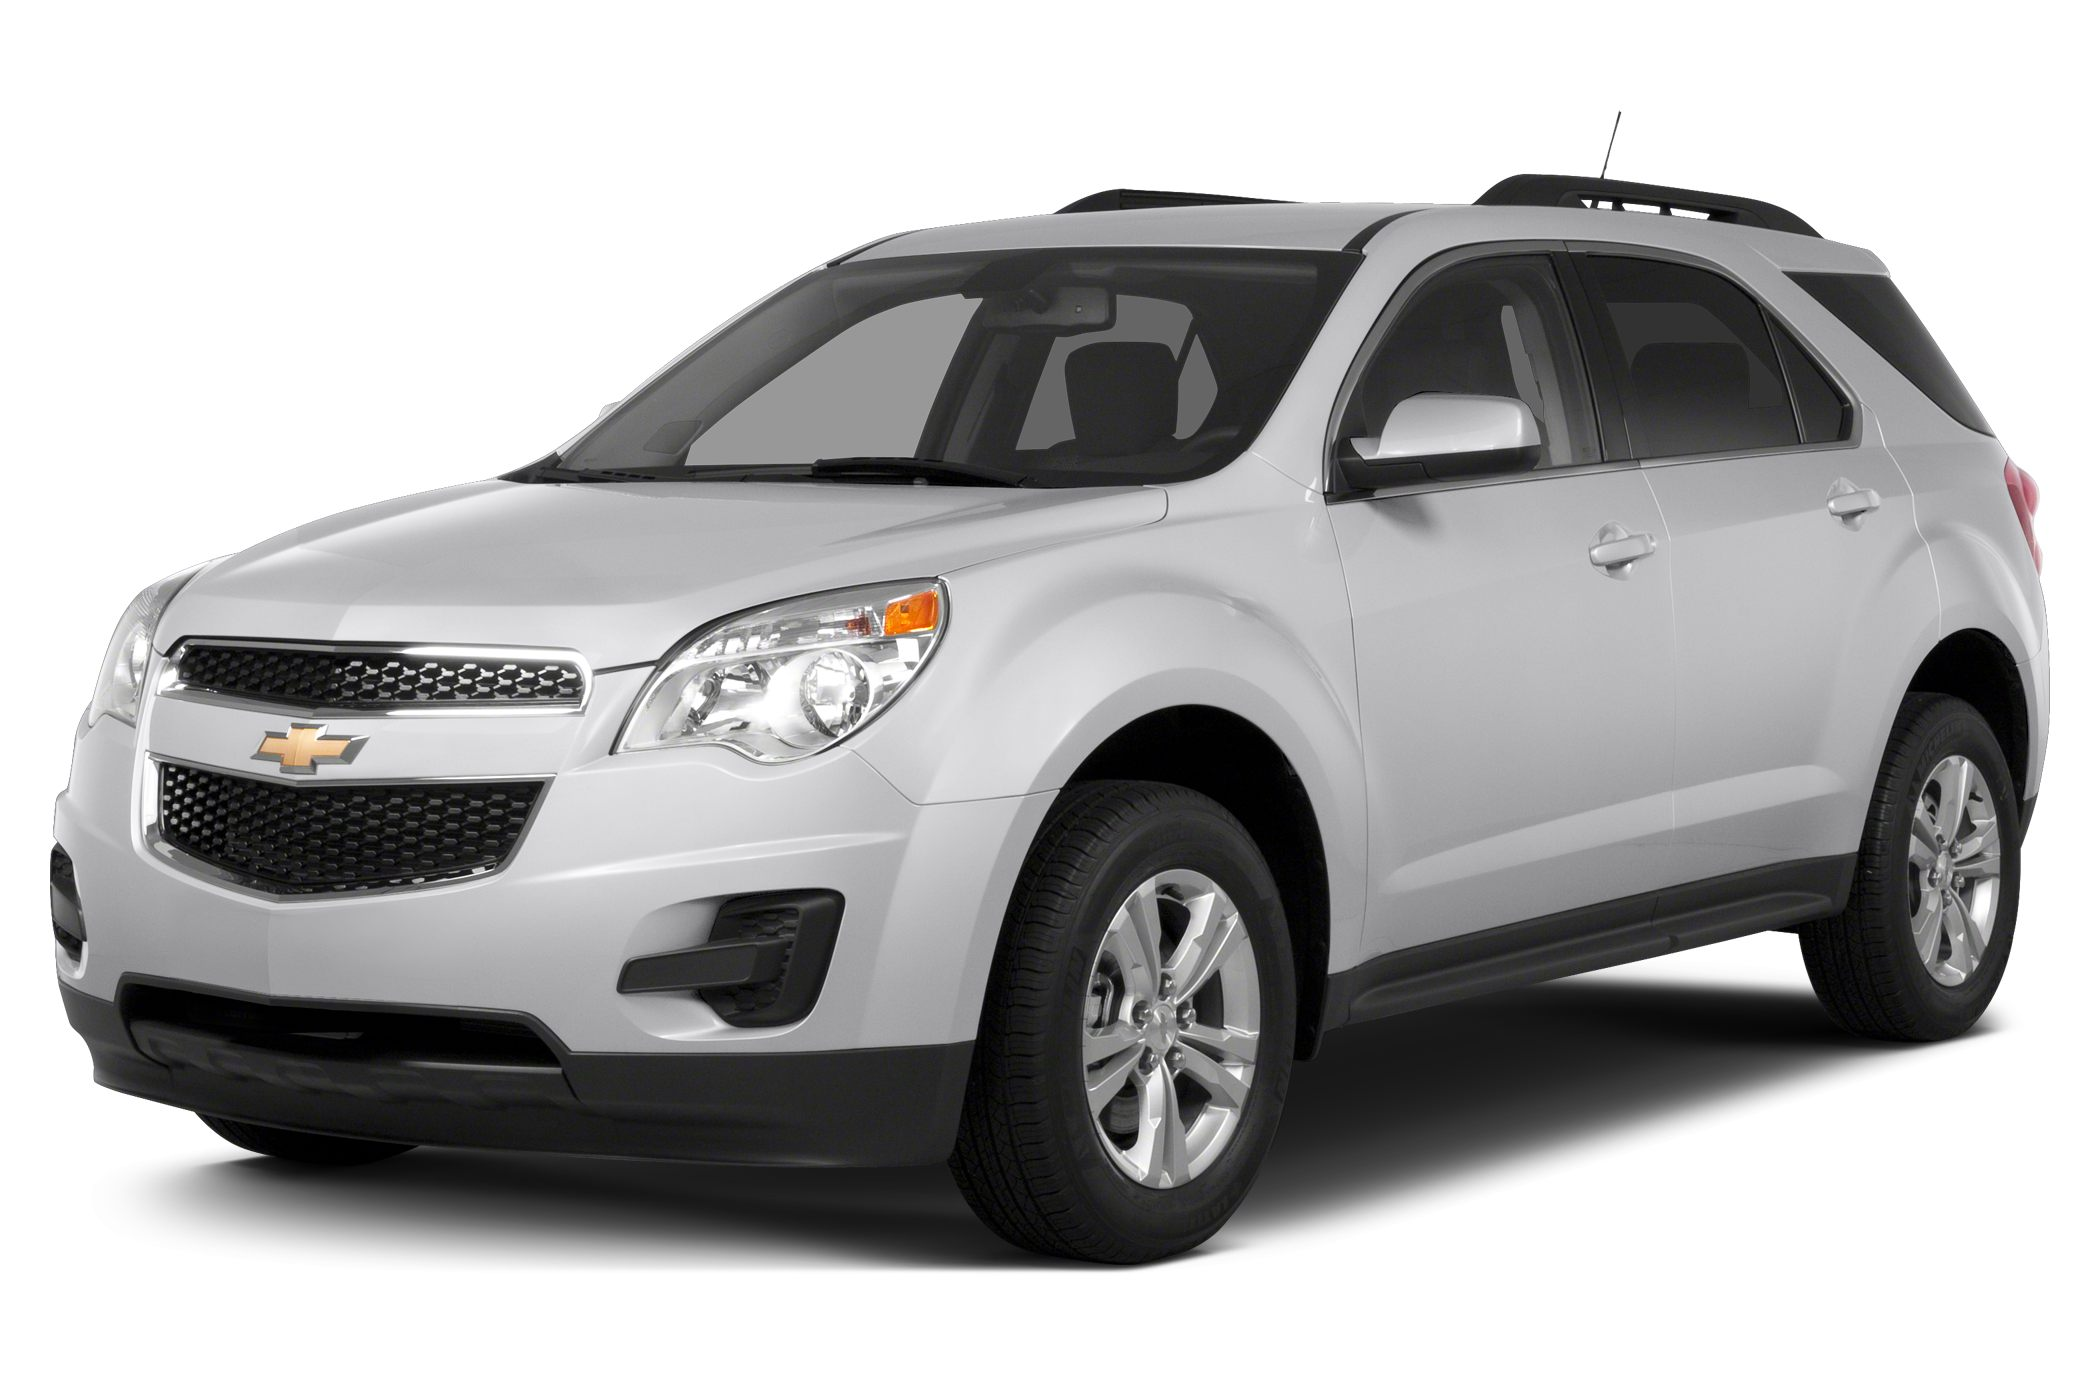 2013 Chevrolet Equinox 1LT SUV for sale in Dexter for $20,900 with 32,949 miles